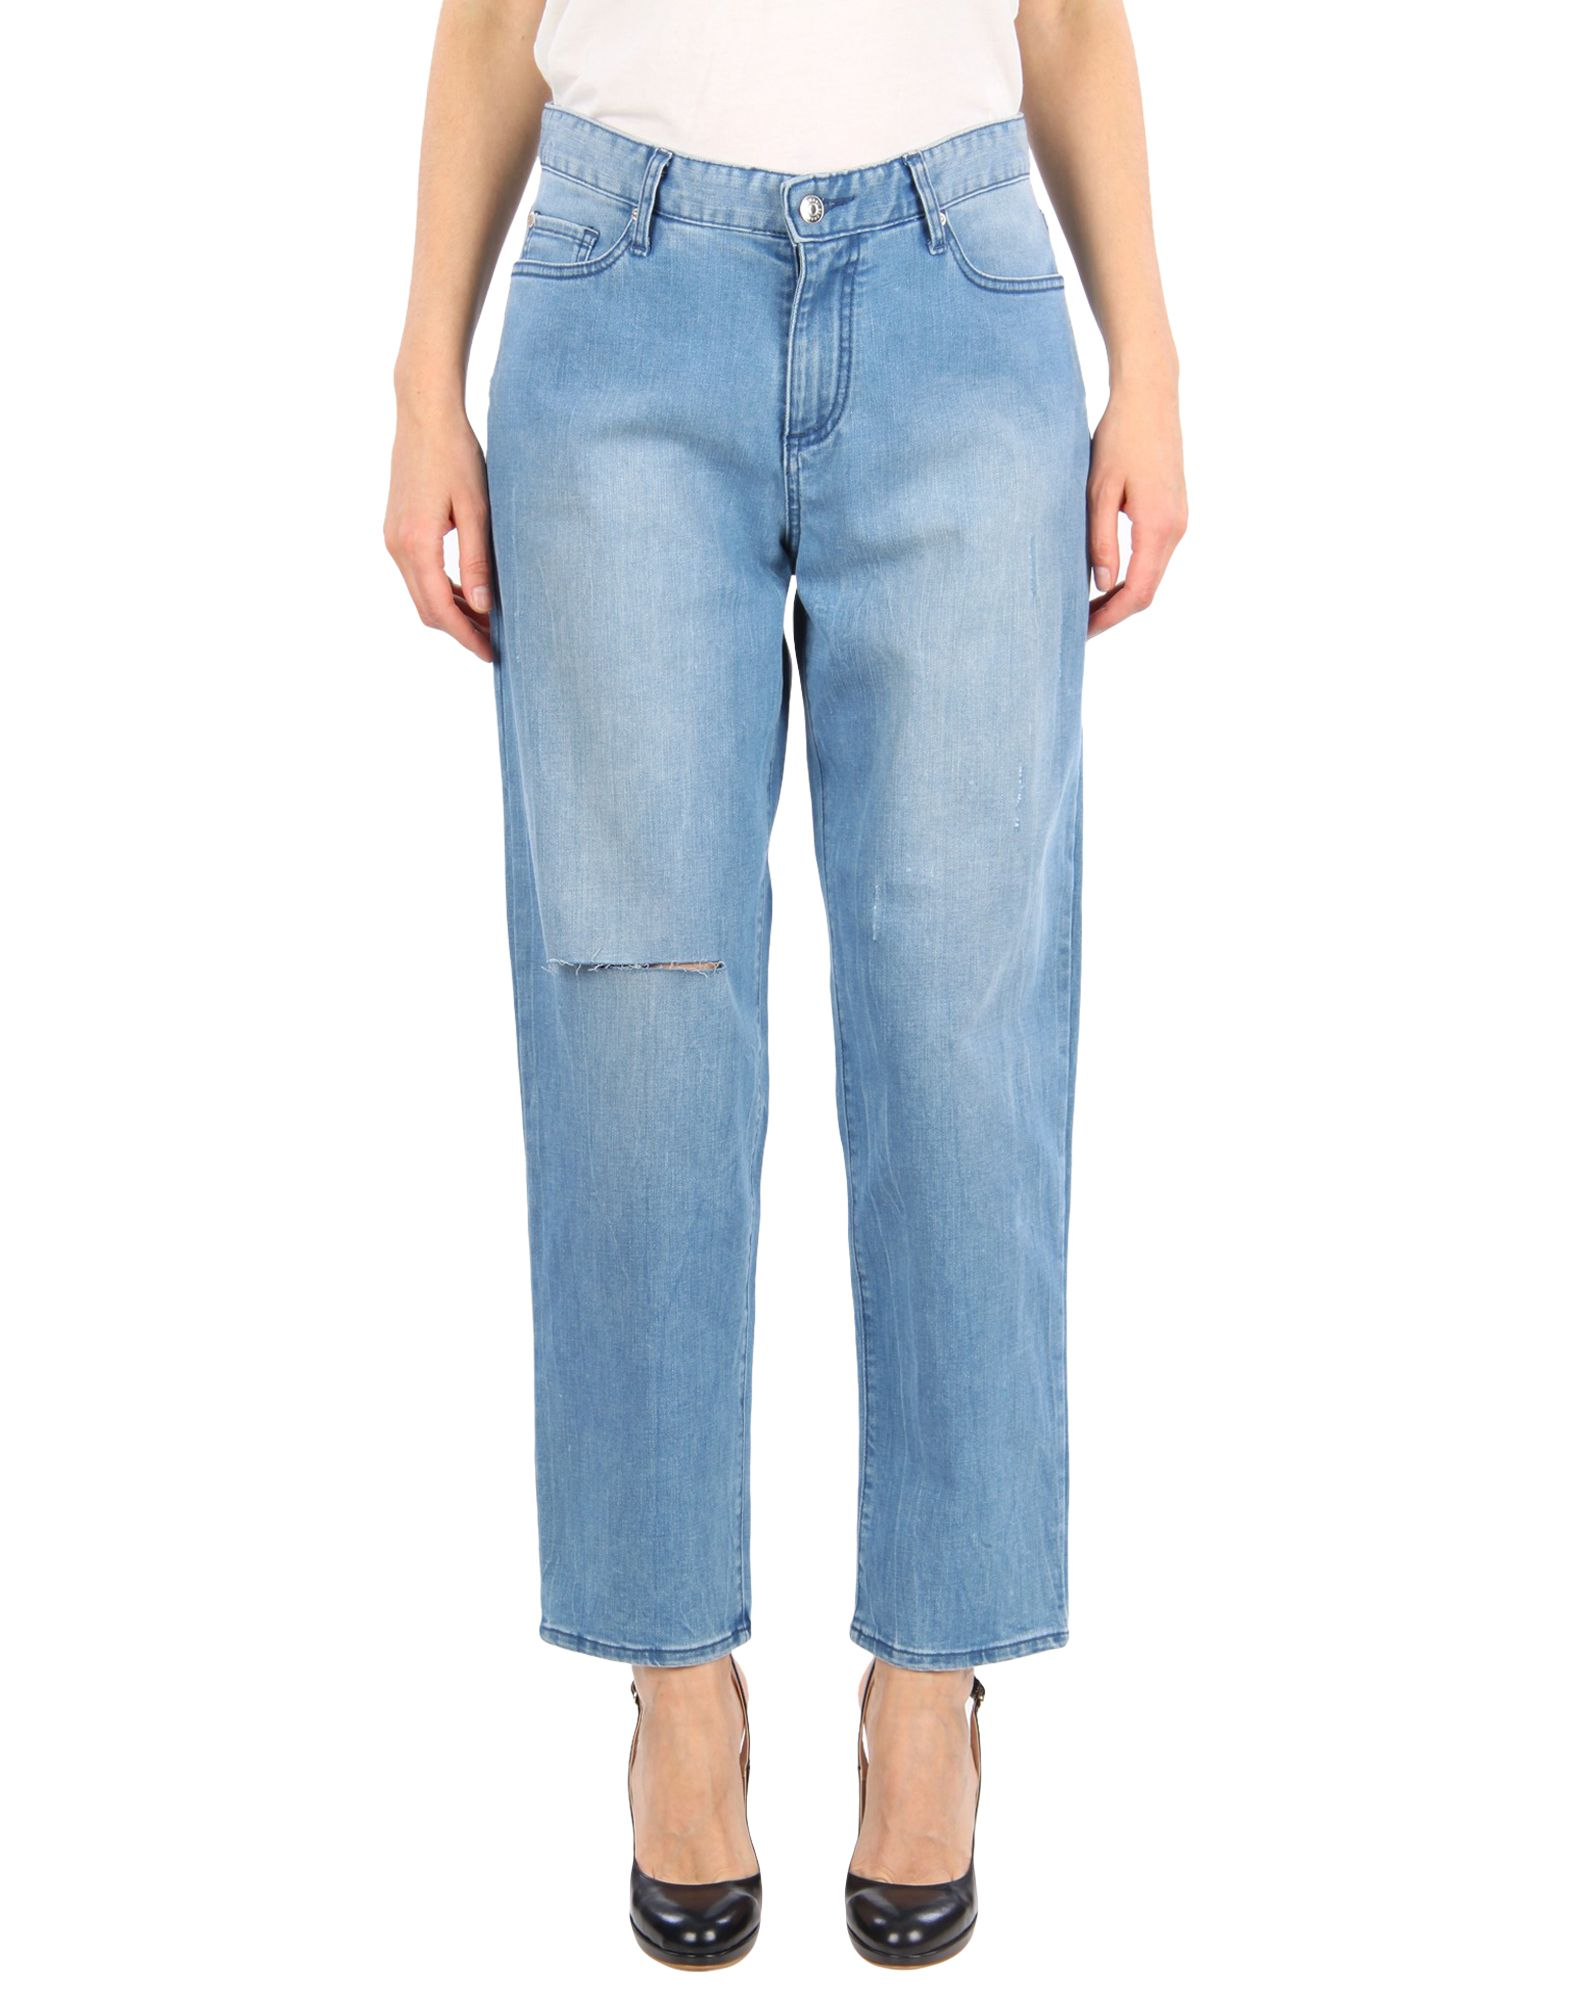 ARMANI EXCHANGE Denim pants - Item 42724573